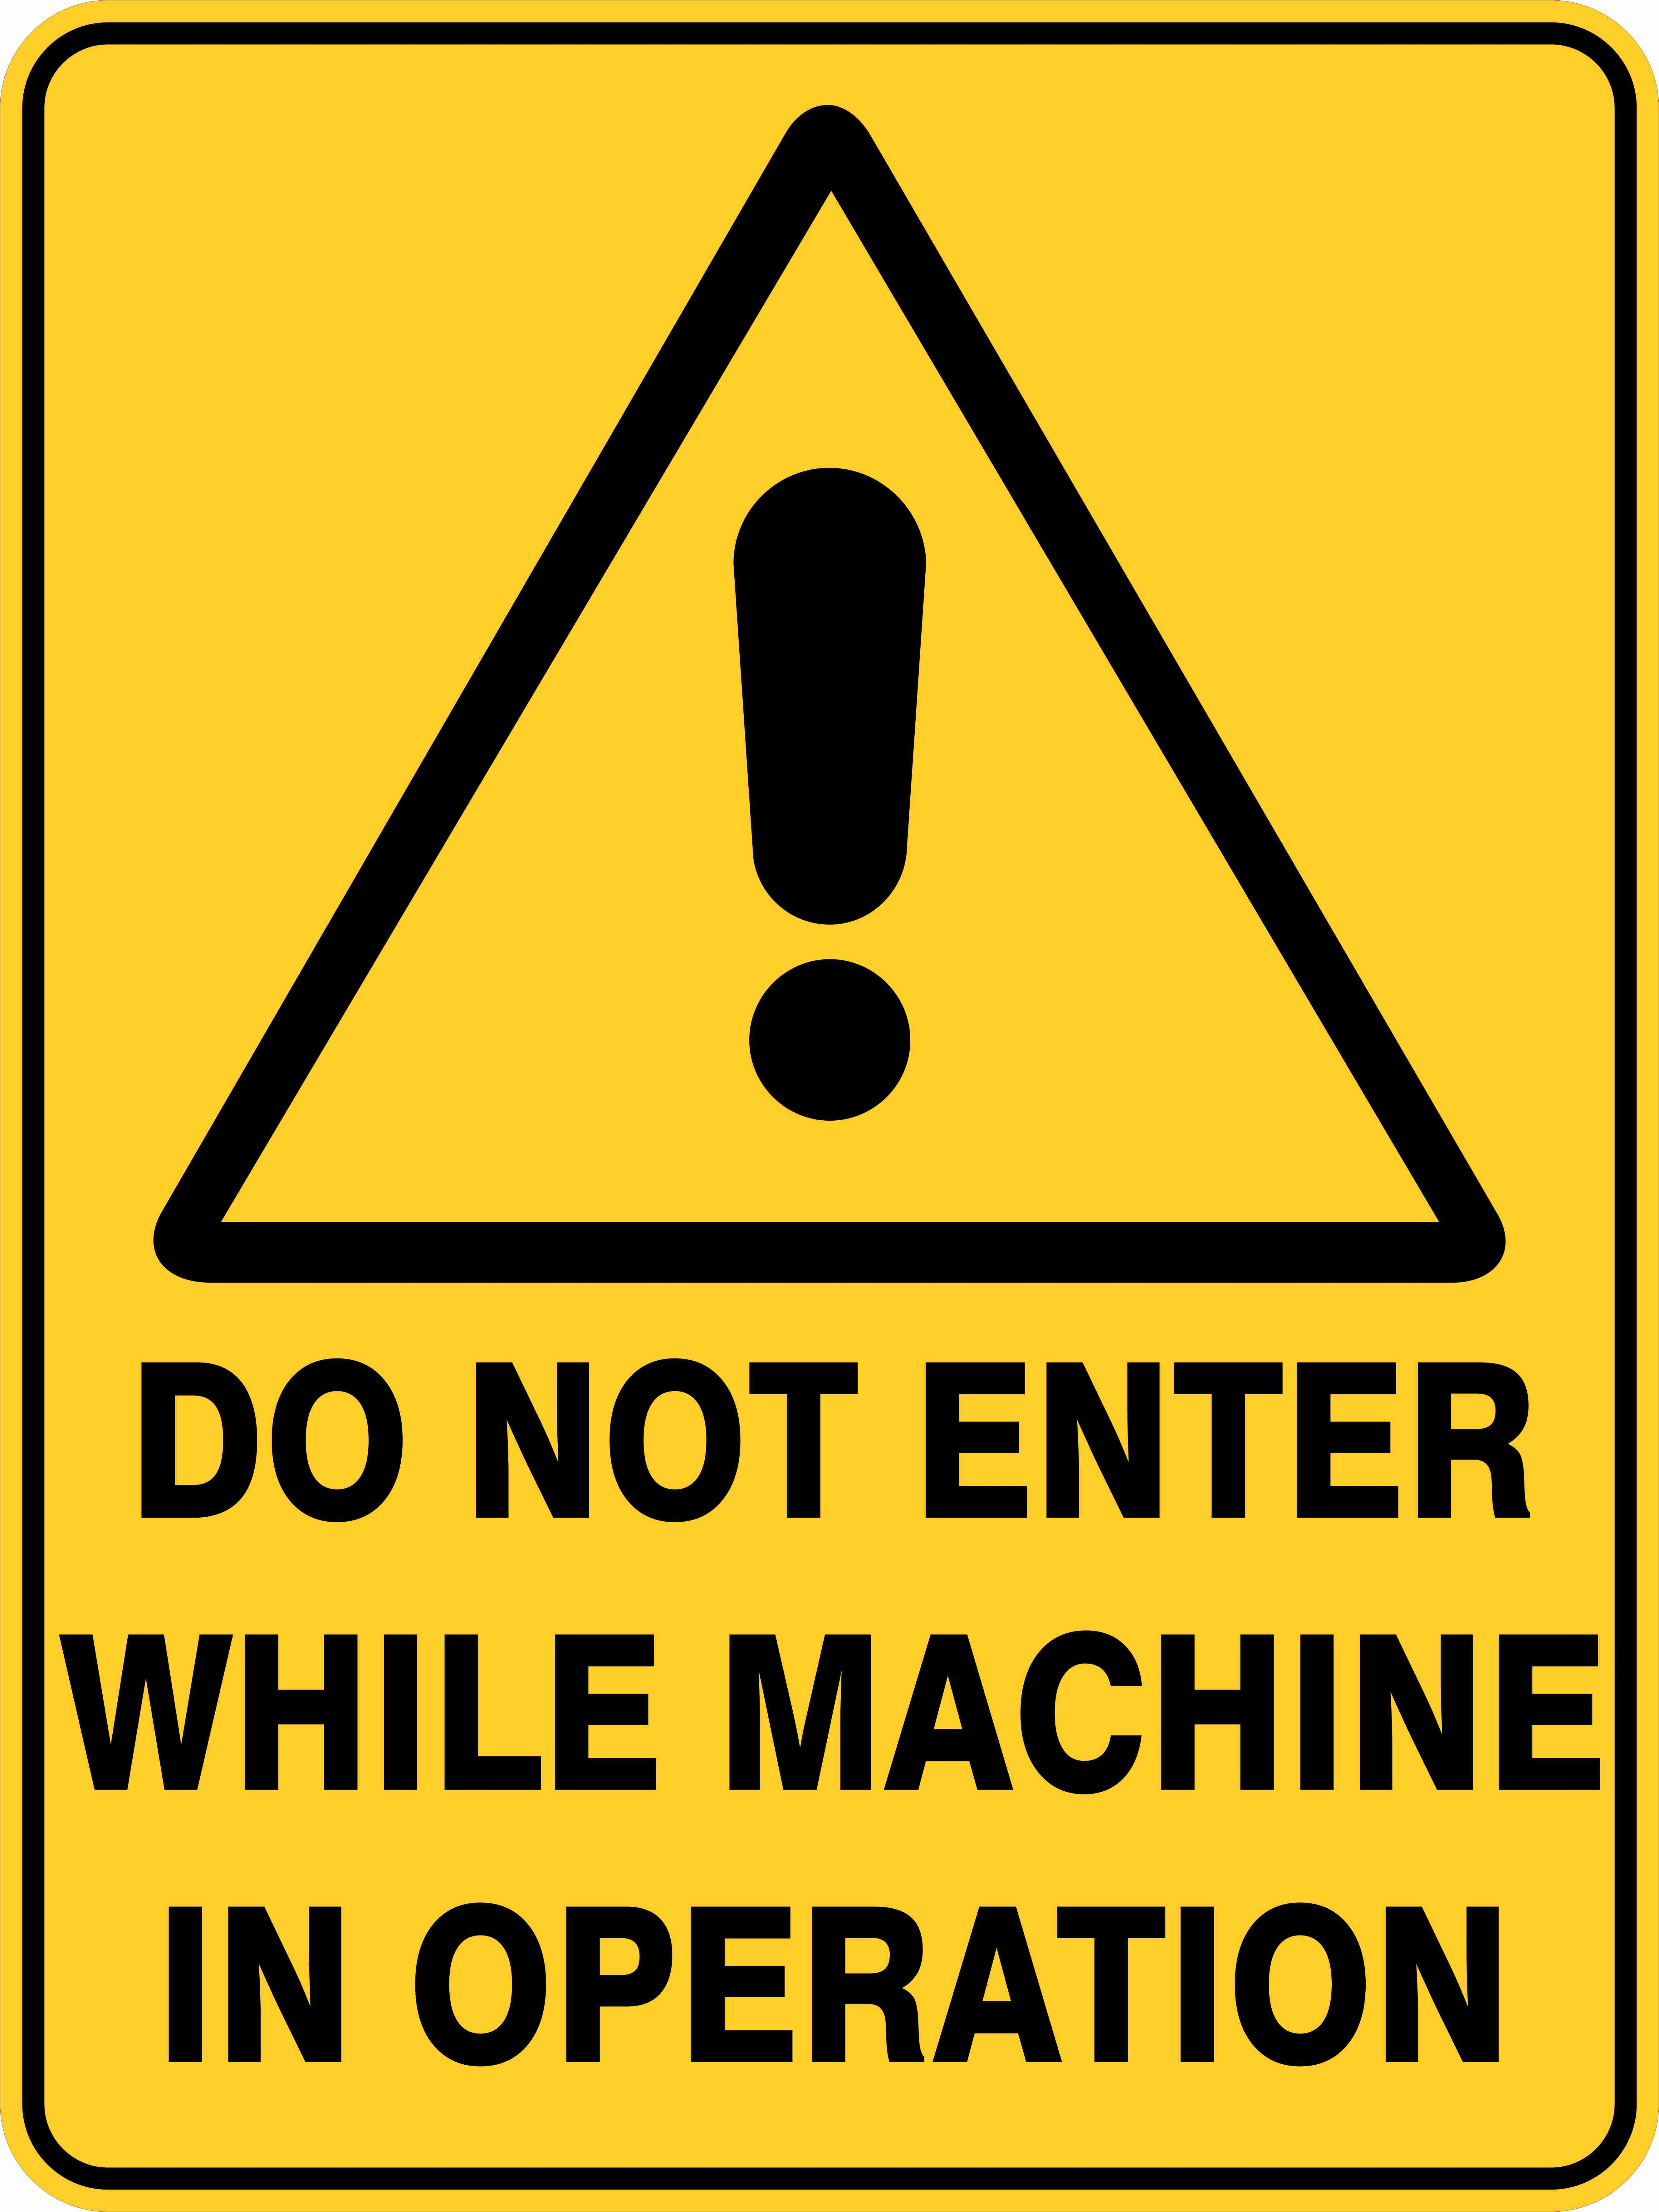 Warning Signs DO NOT ENTER WHILE MACHINE IN OPERATION